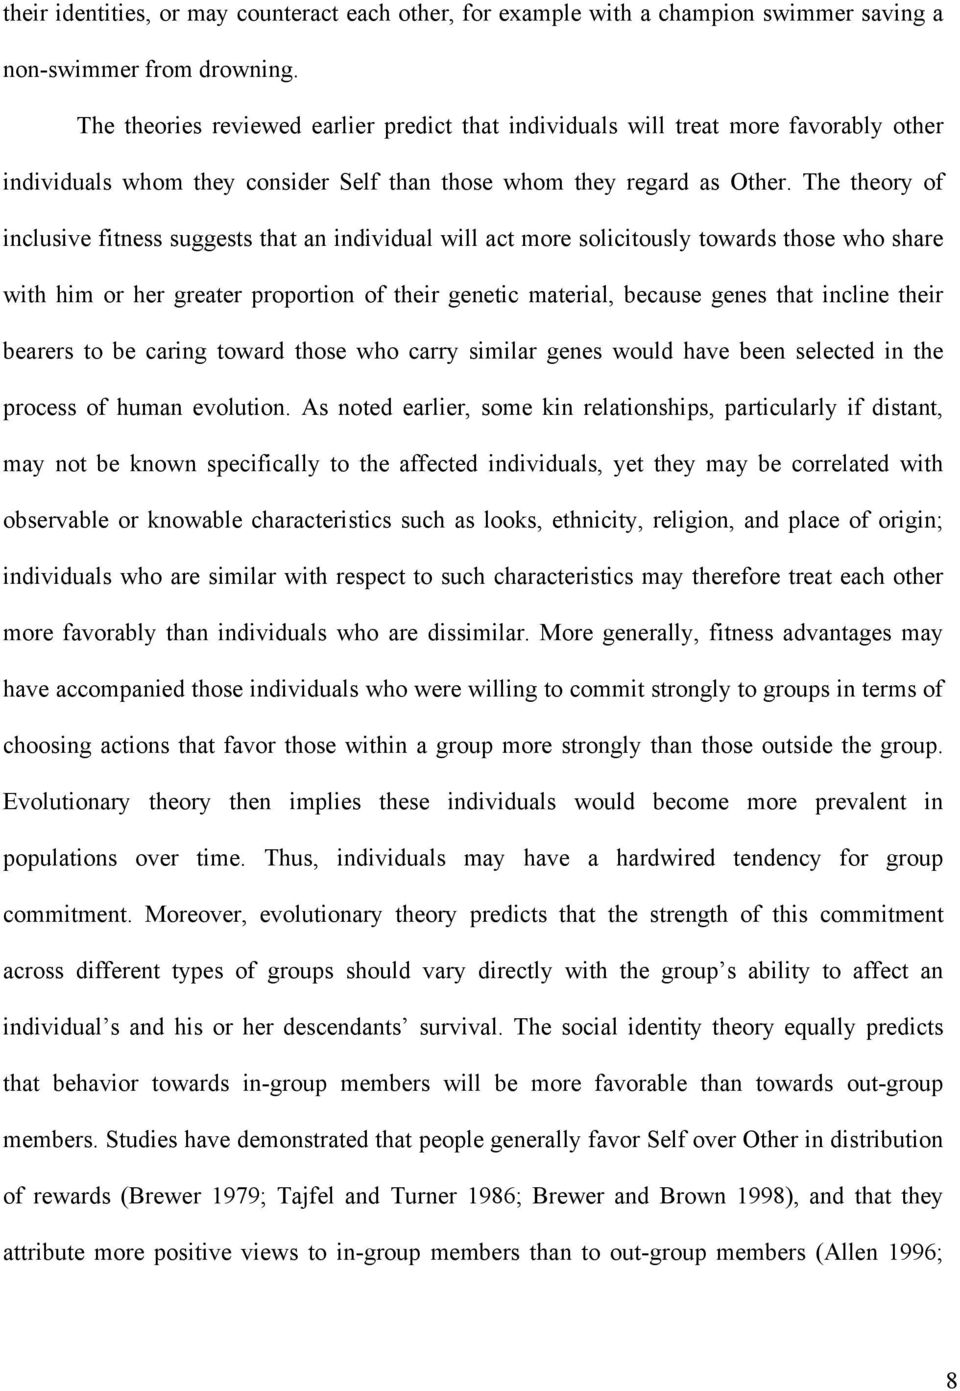 The theory of inclusive fitness suggests that an individual will act more solicitously towards those who share with him or her greater proportion of their genetic material, because genes that incline